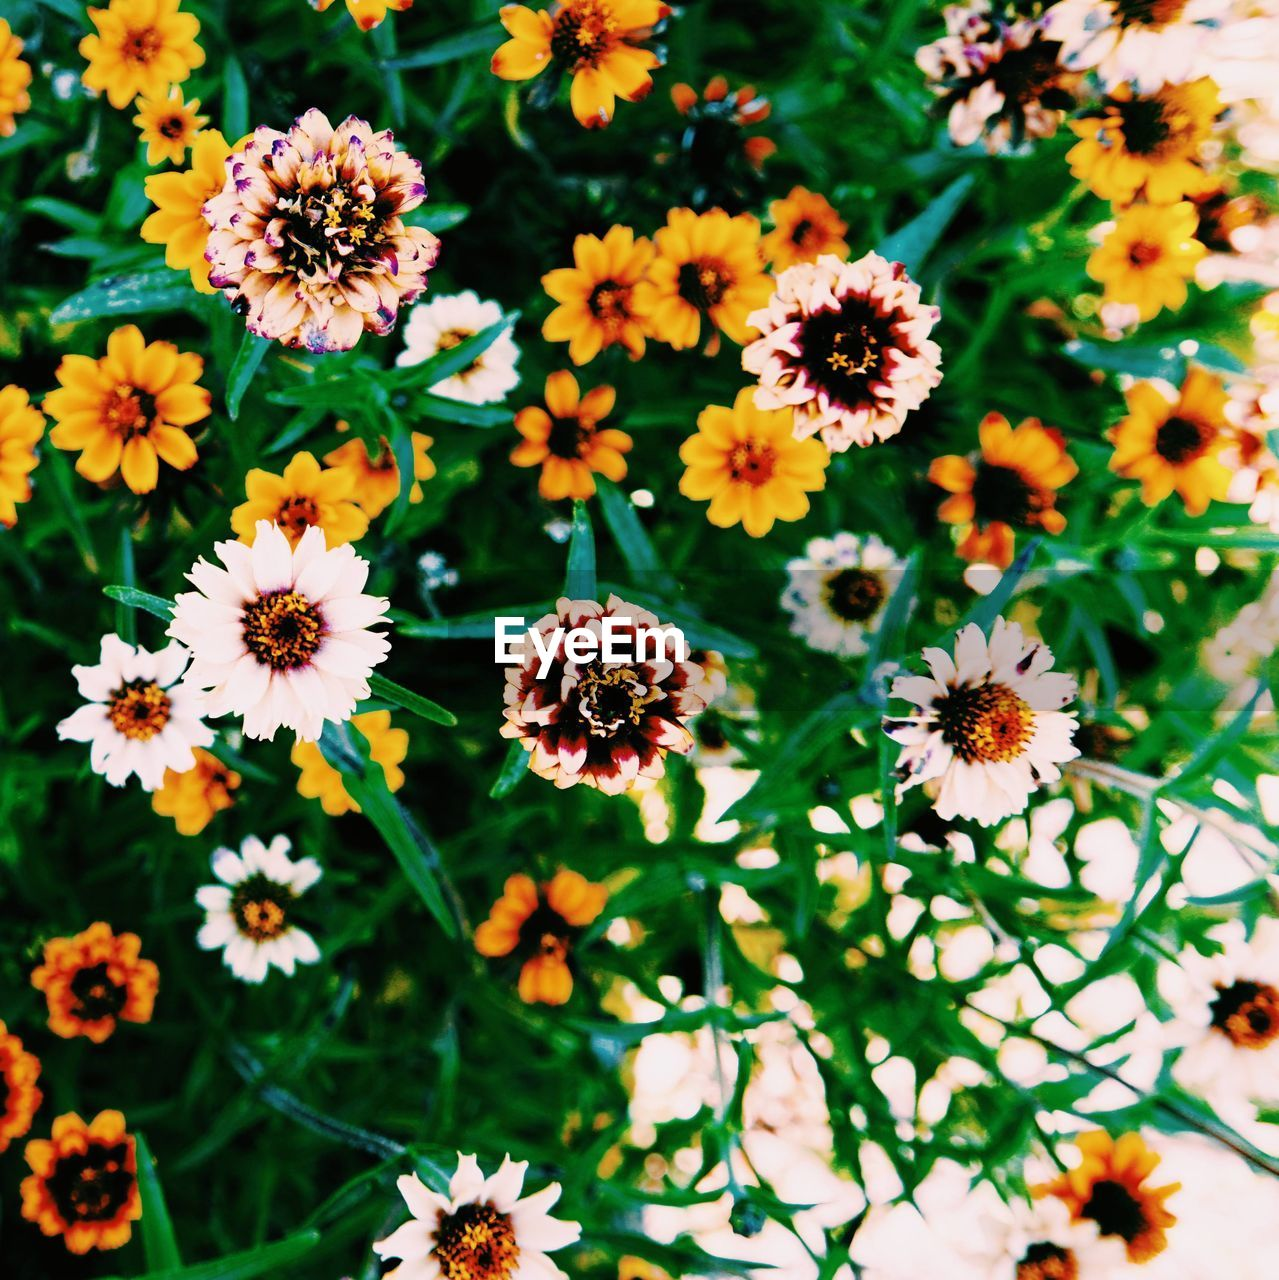 flowering plant, flower, fragility, vulnerability, freshness, plant, beauty in nature, growth, flower head, petal, inflorescence, close-up, nature, no people, high angle view, day, focus on foreground, outdoors, field, land, pollen